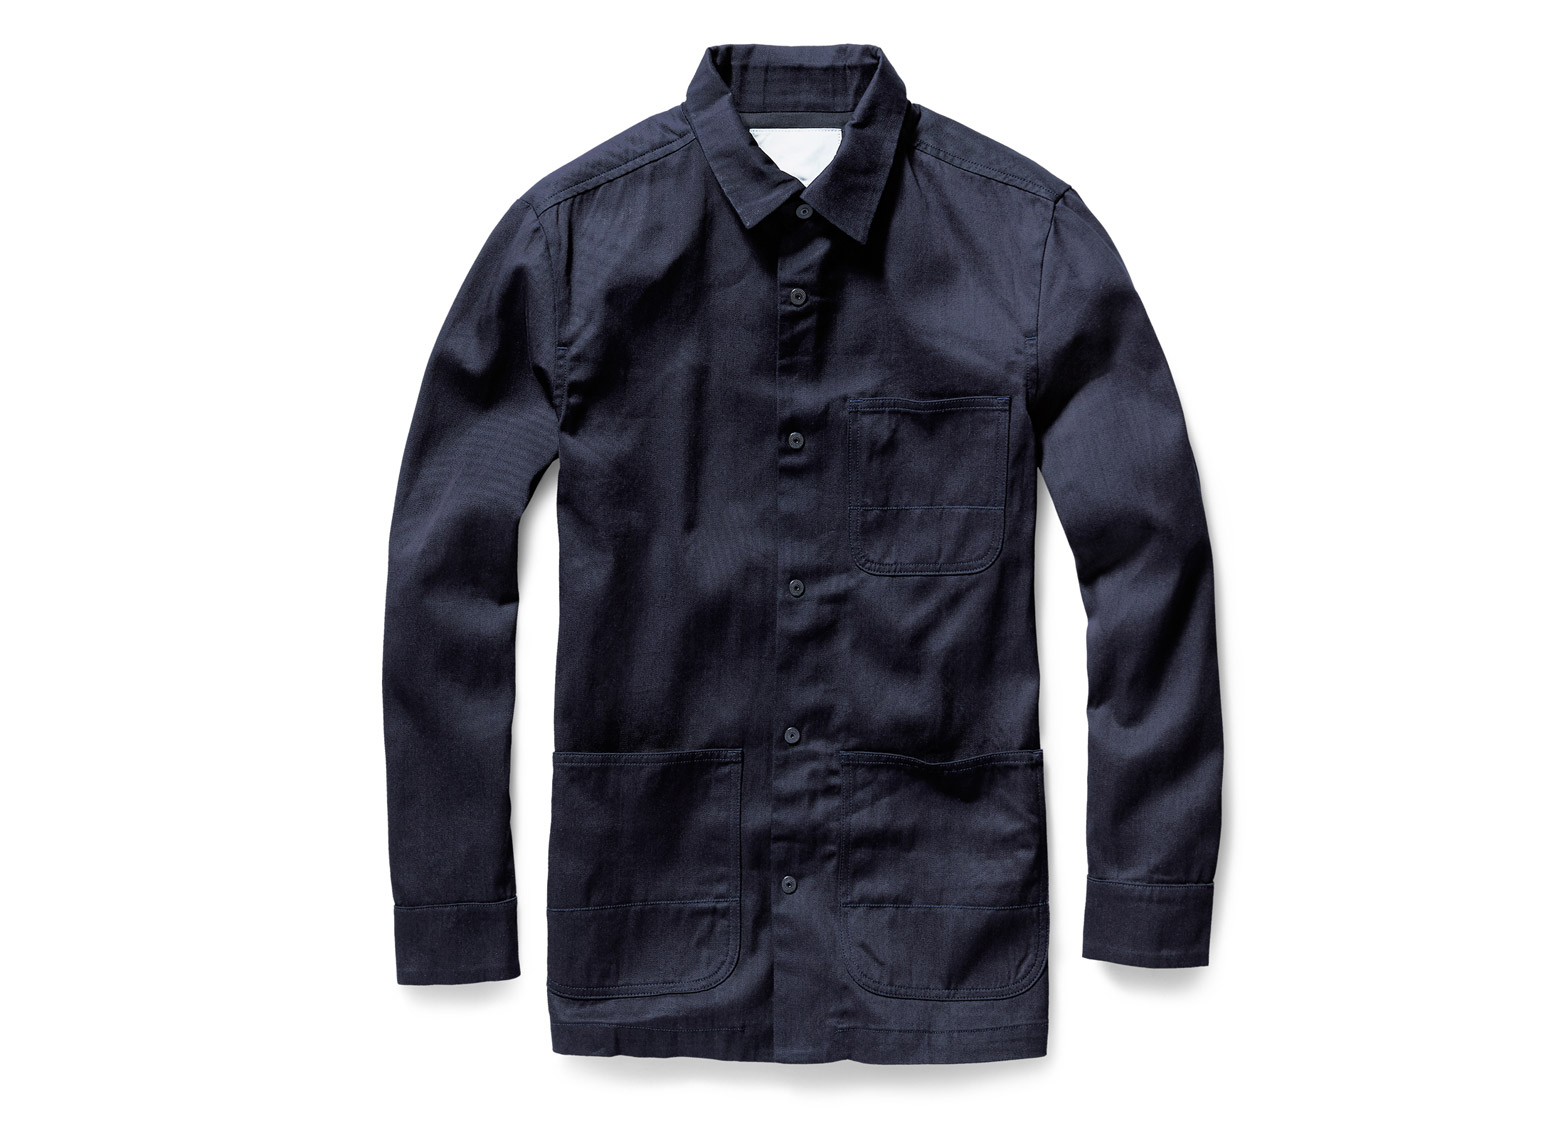 G Star RAW by Marc Newson for Spring Summer 2016